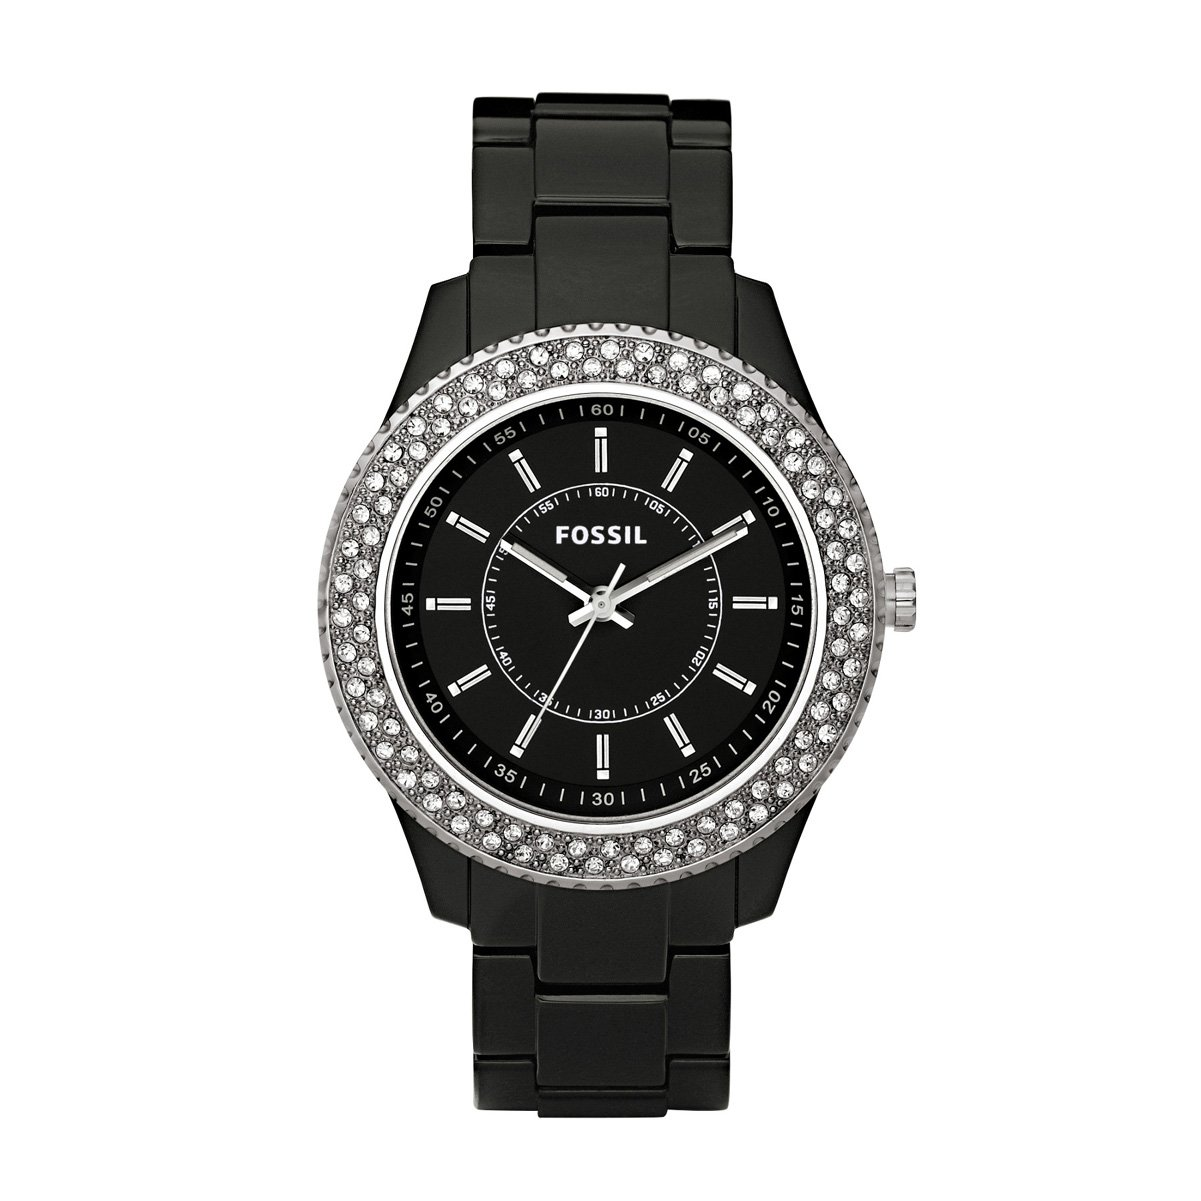 Amazon.com: Fossil Womens ES2445 Black Resin Bracelet Black Glitz Analog Dial Watch: Fossil: Watches